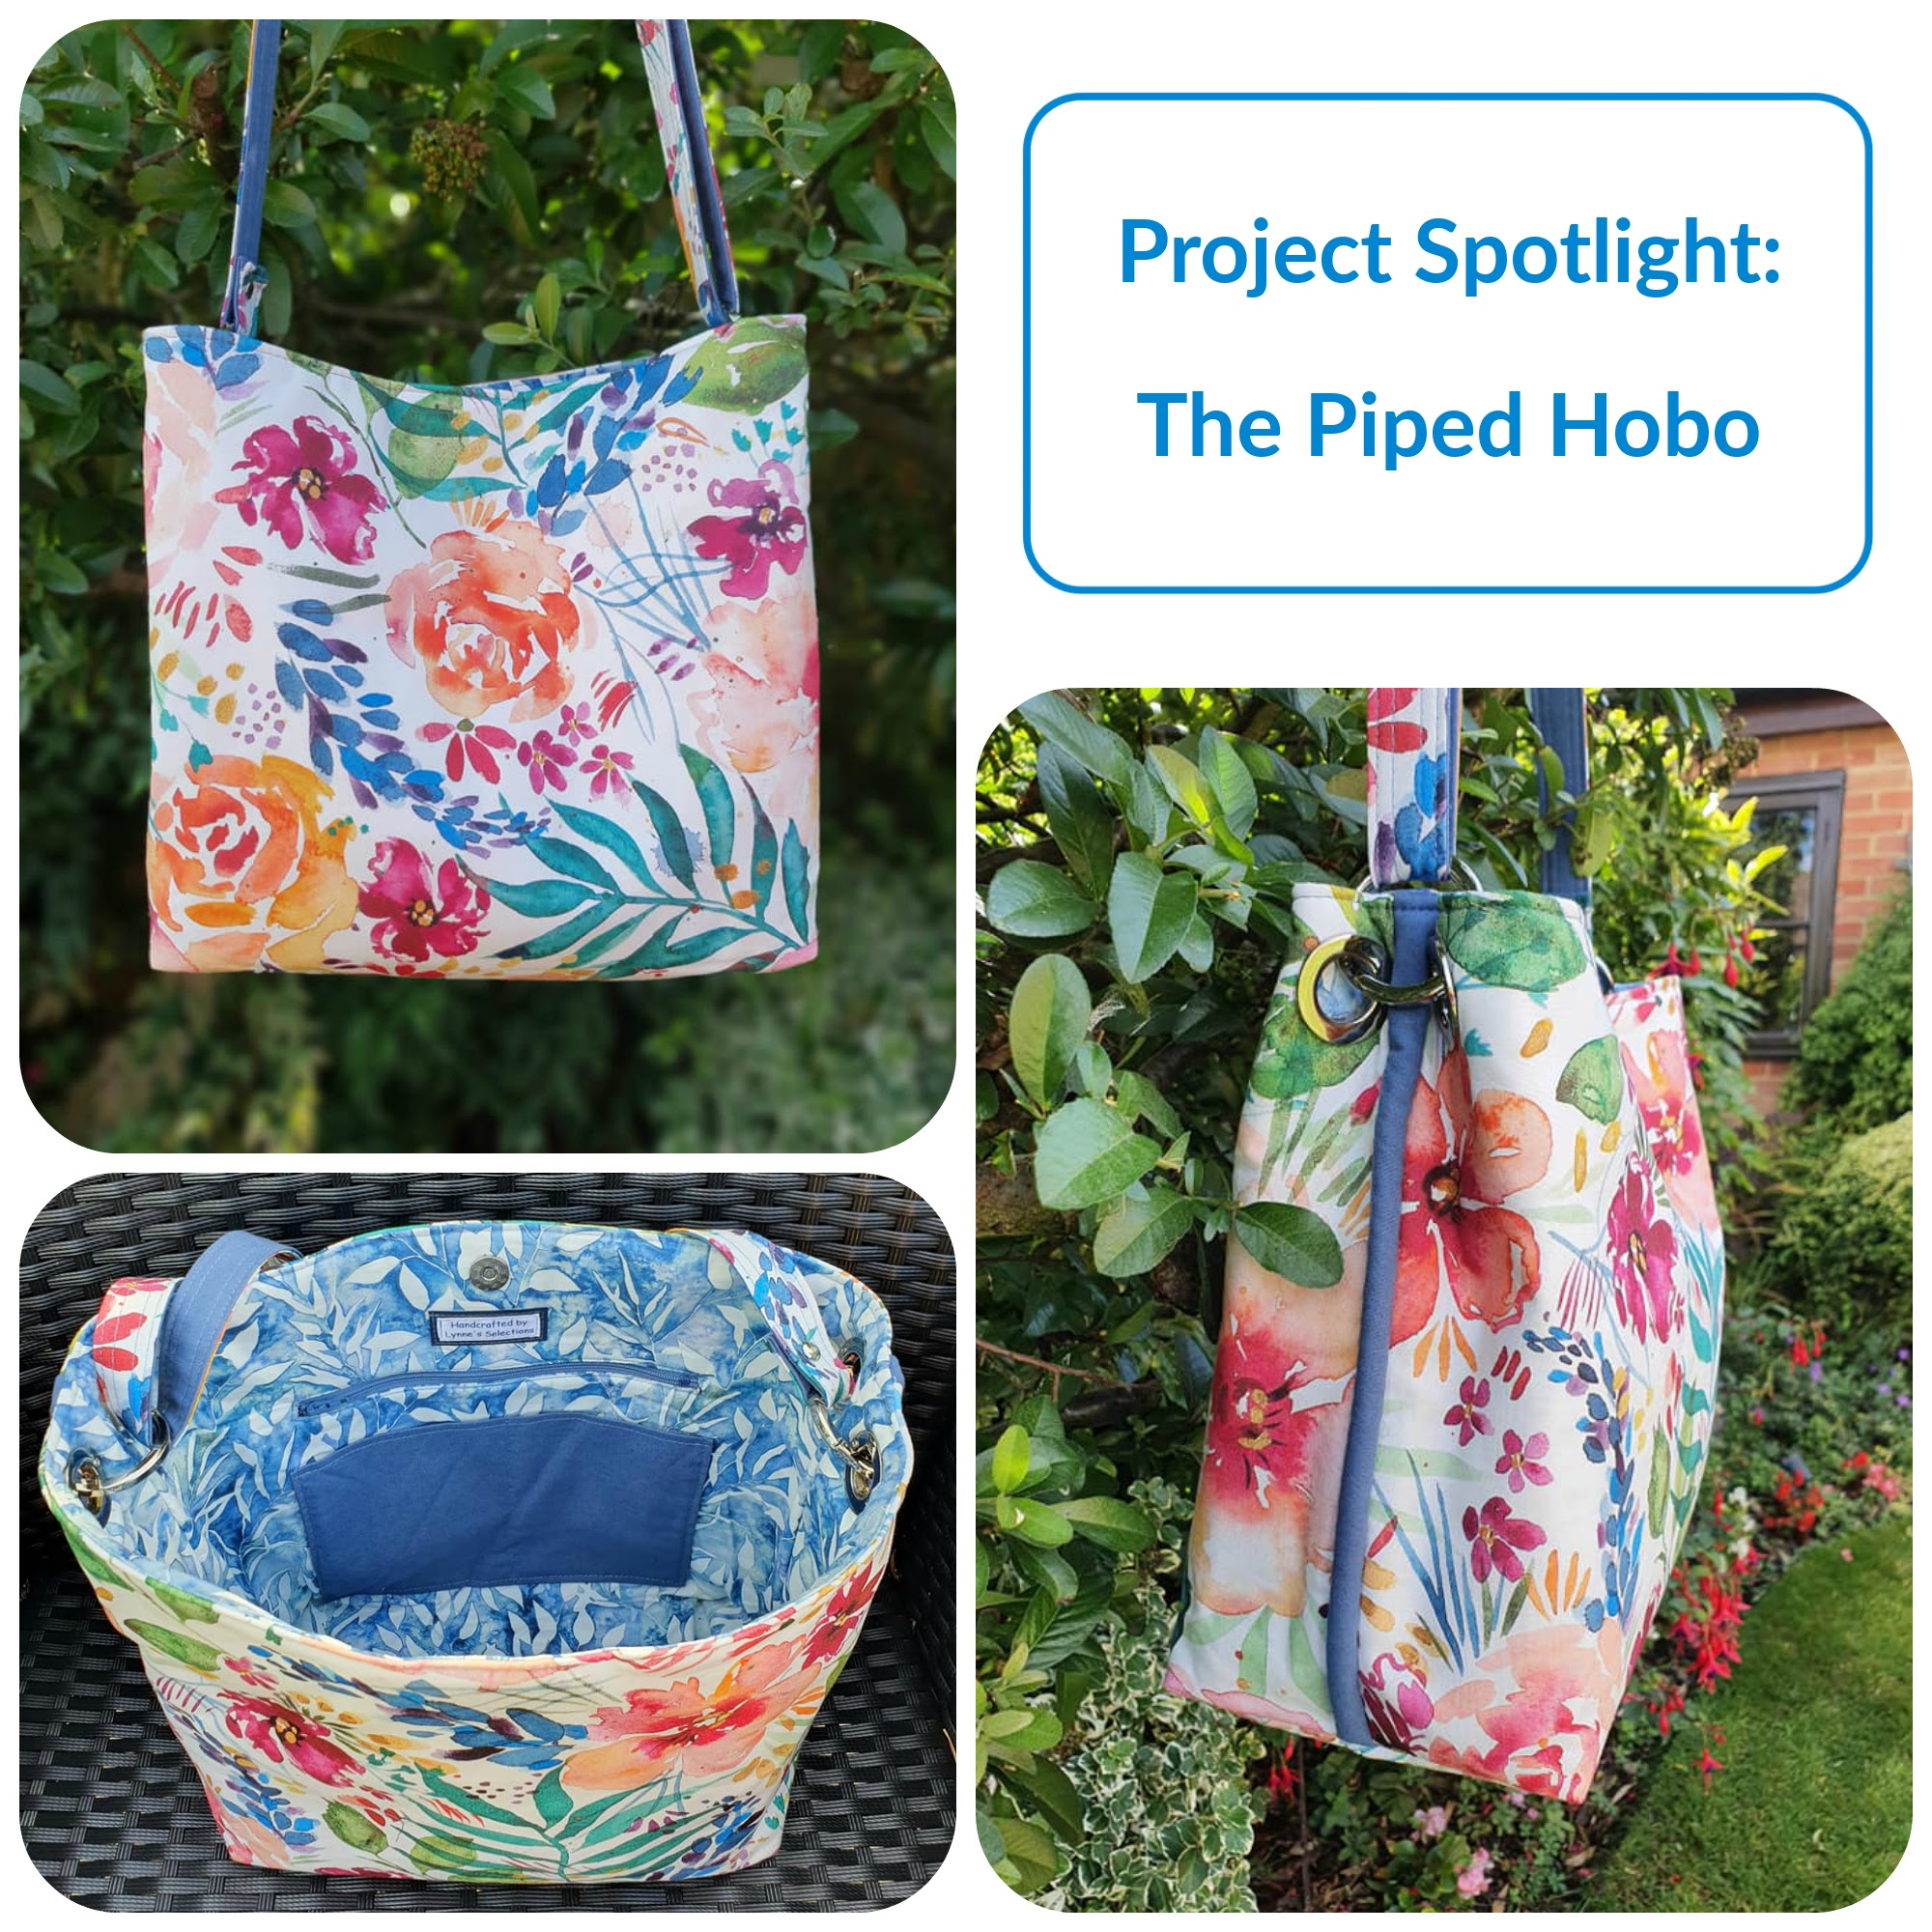 The Piped Hobo from The Complete Bag Making Masterclass by Samantha Hussey